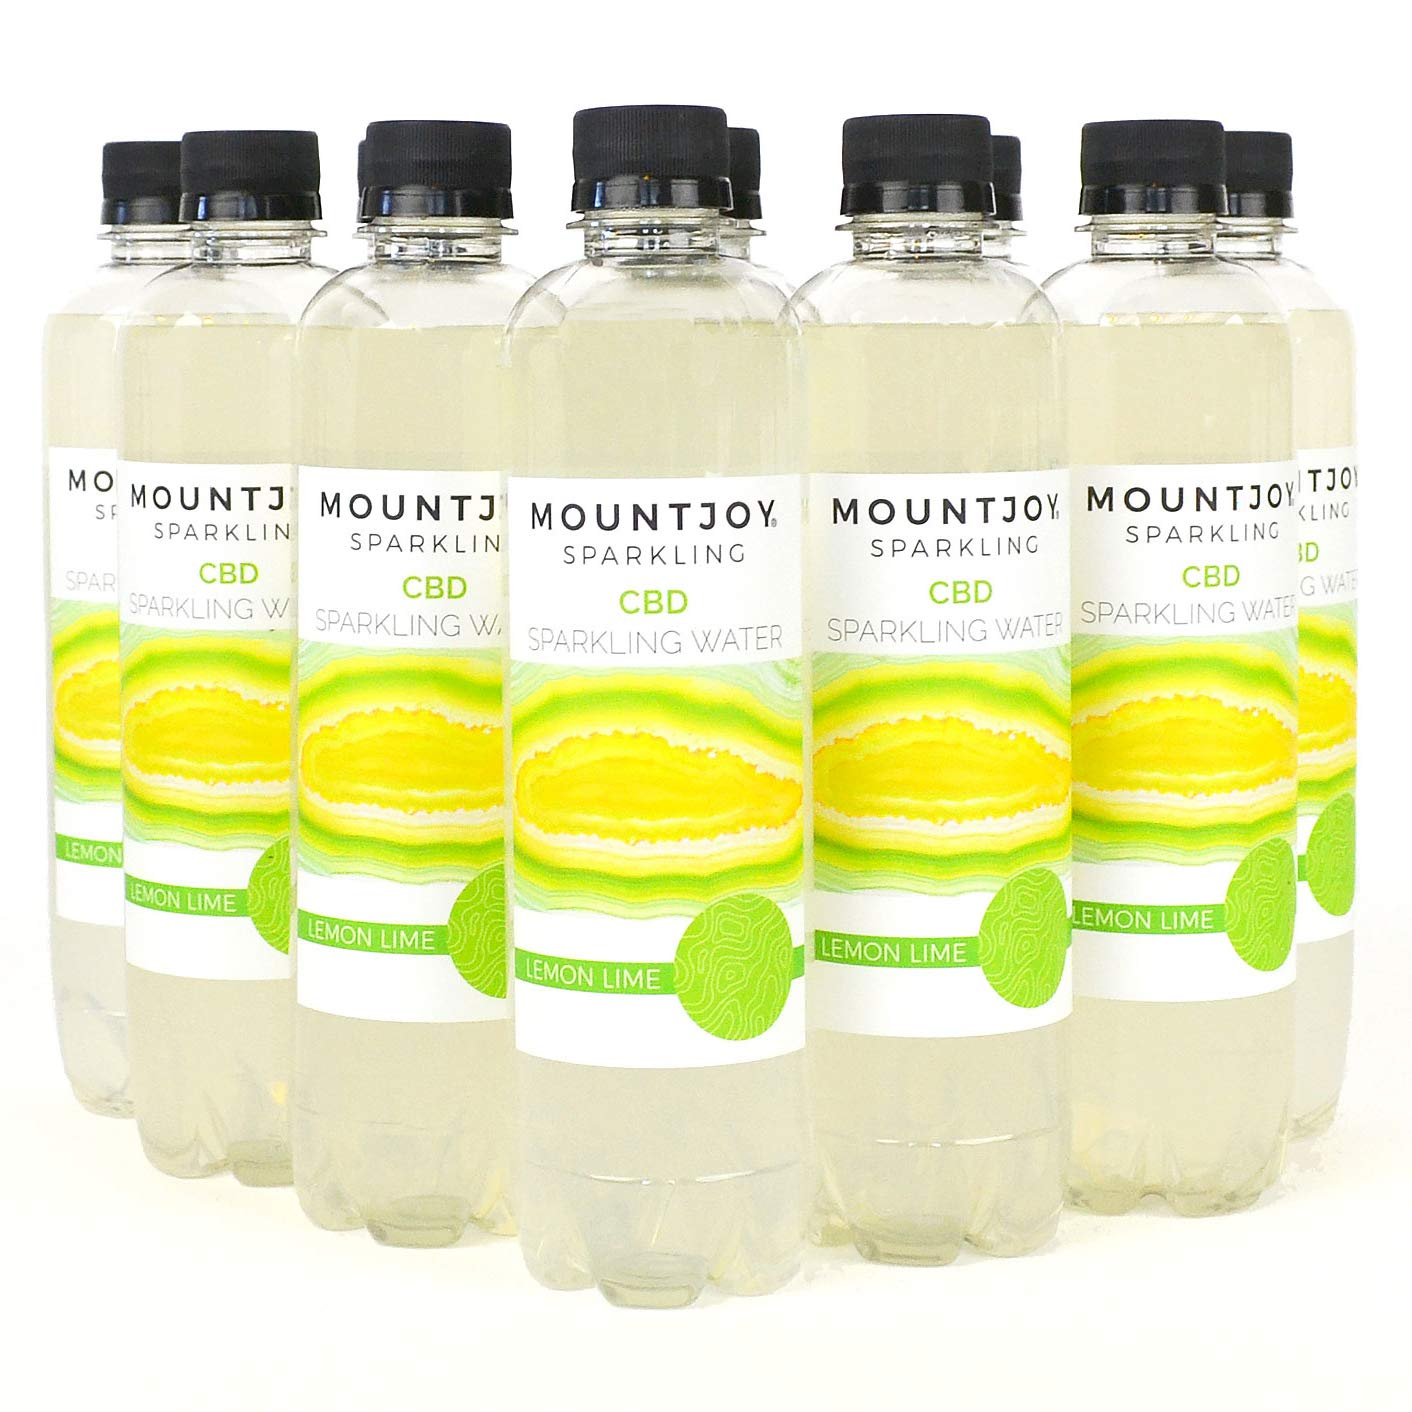 Mountjoy Sparkling CEE-BEE-DEE Lemon Lime (12)